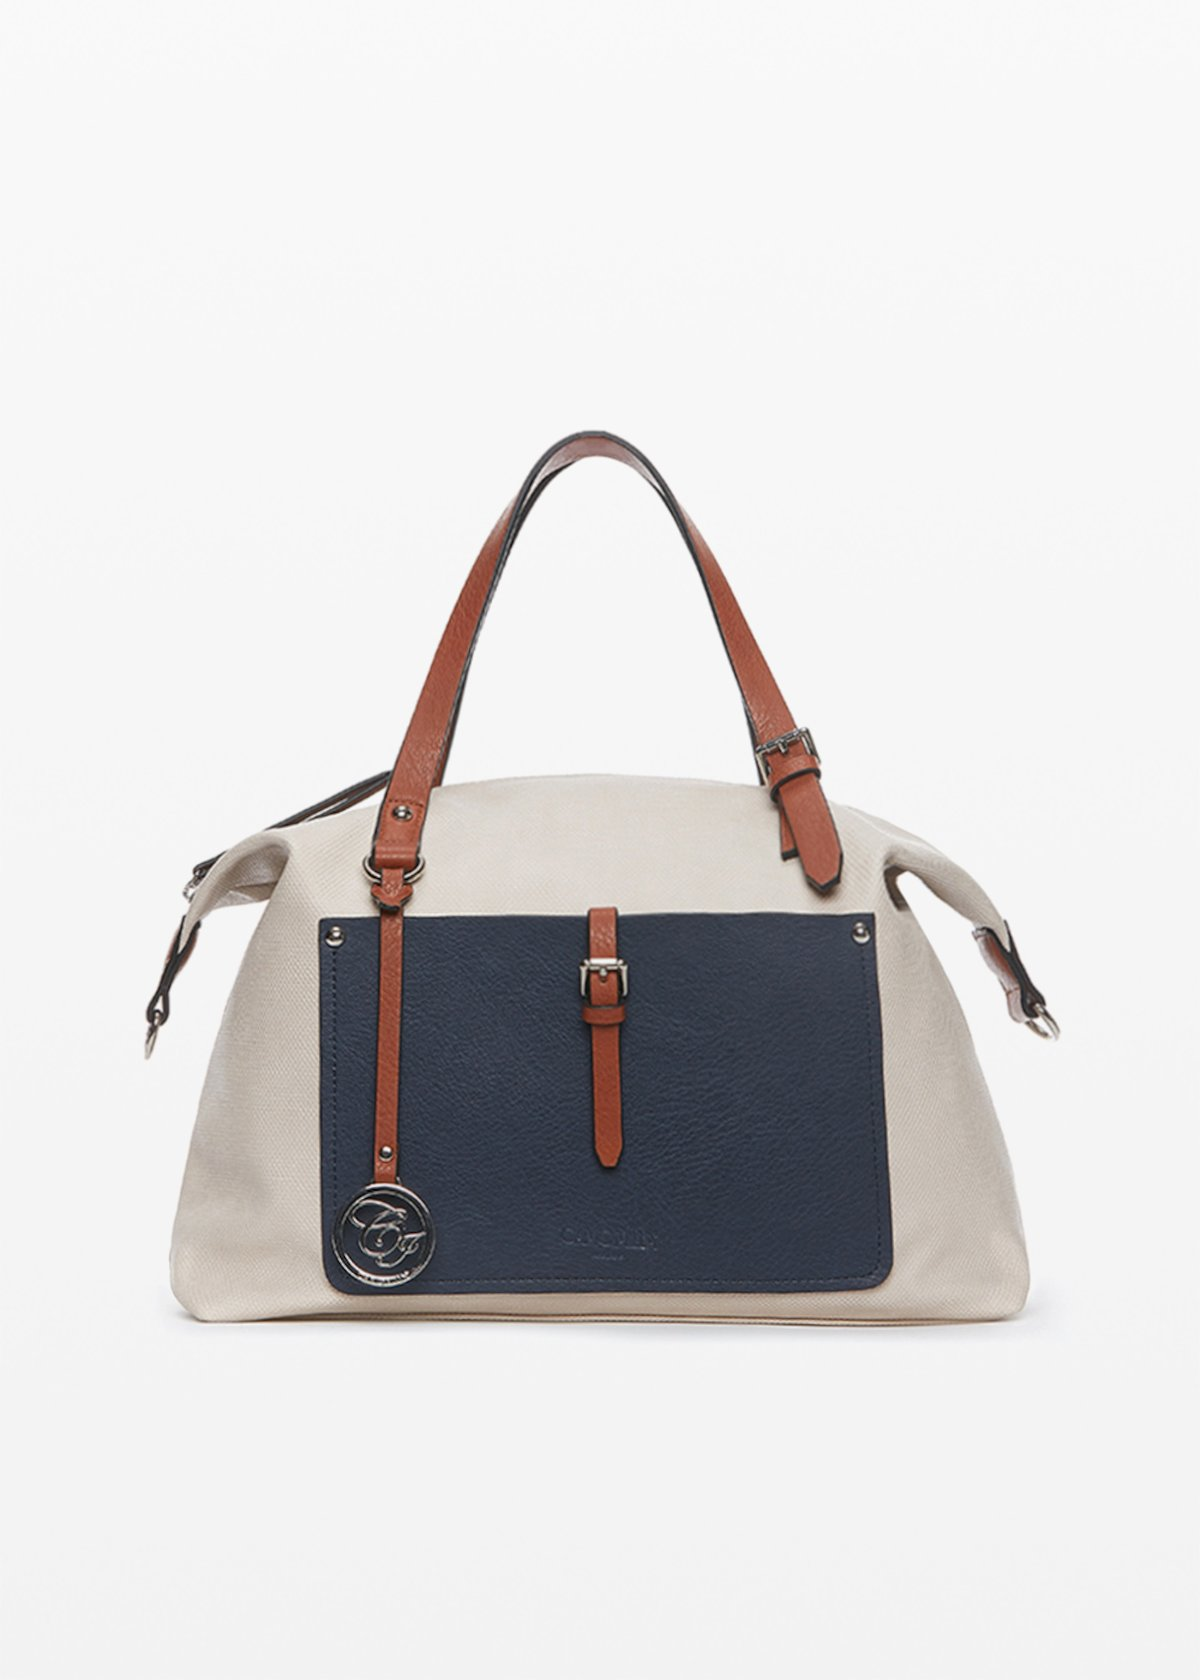 Faux leather Brenda handbag with front pocket - Light Beige /  Medium Blue - Woman